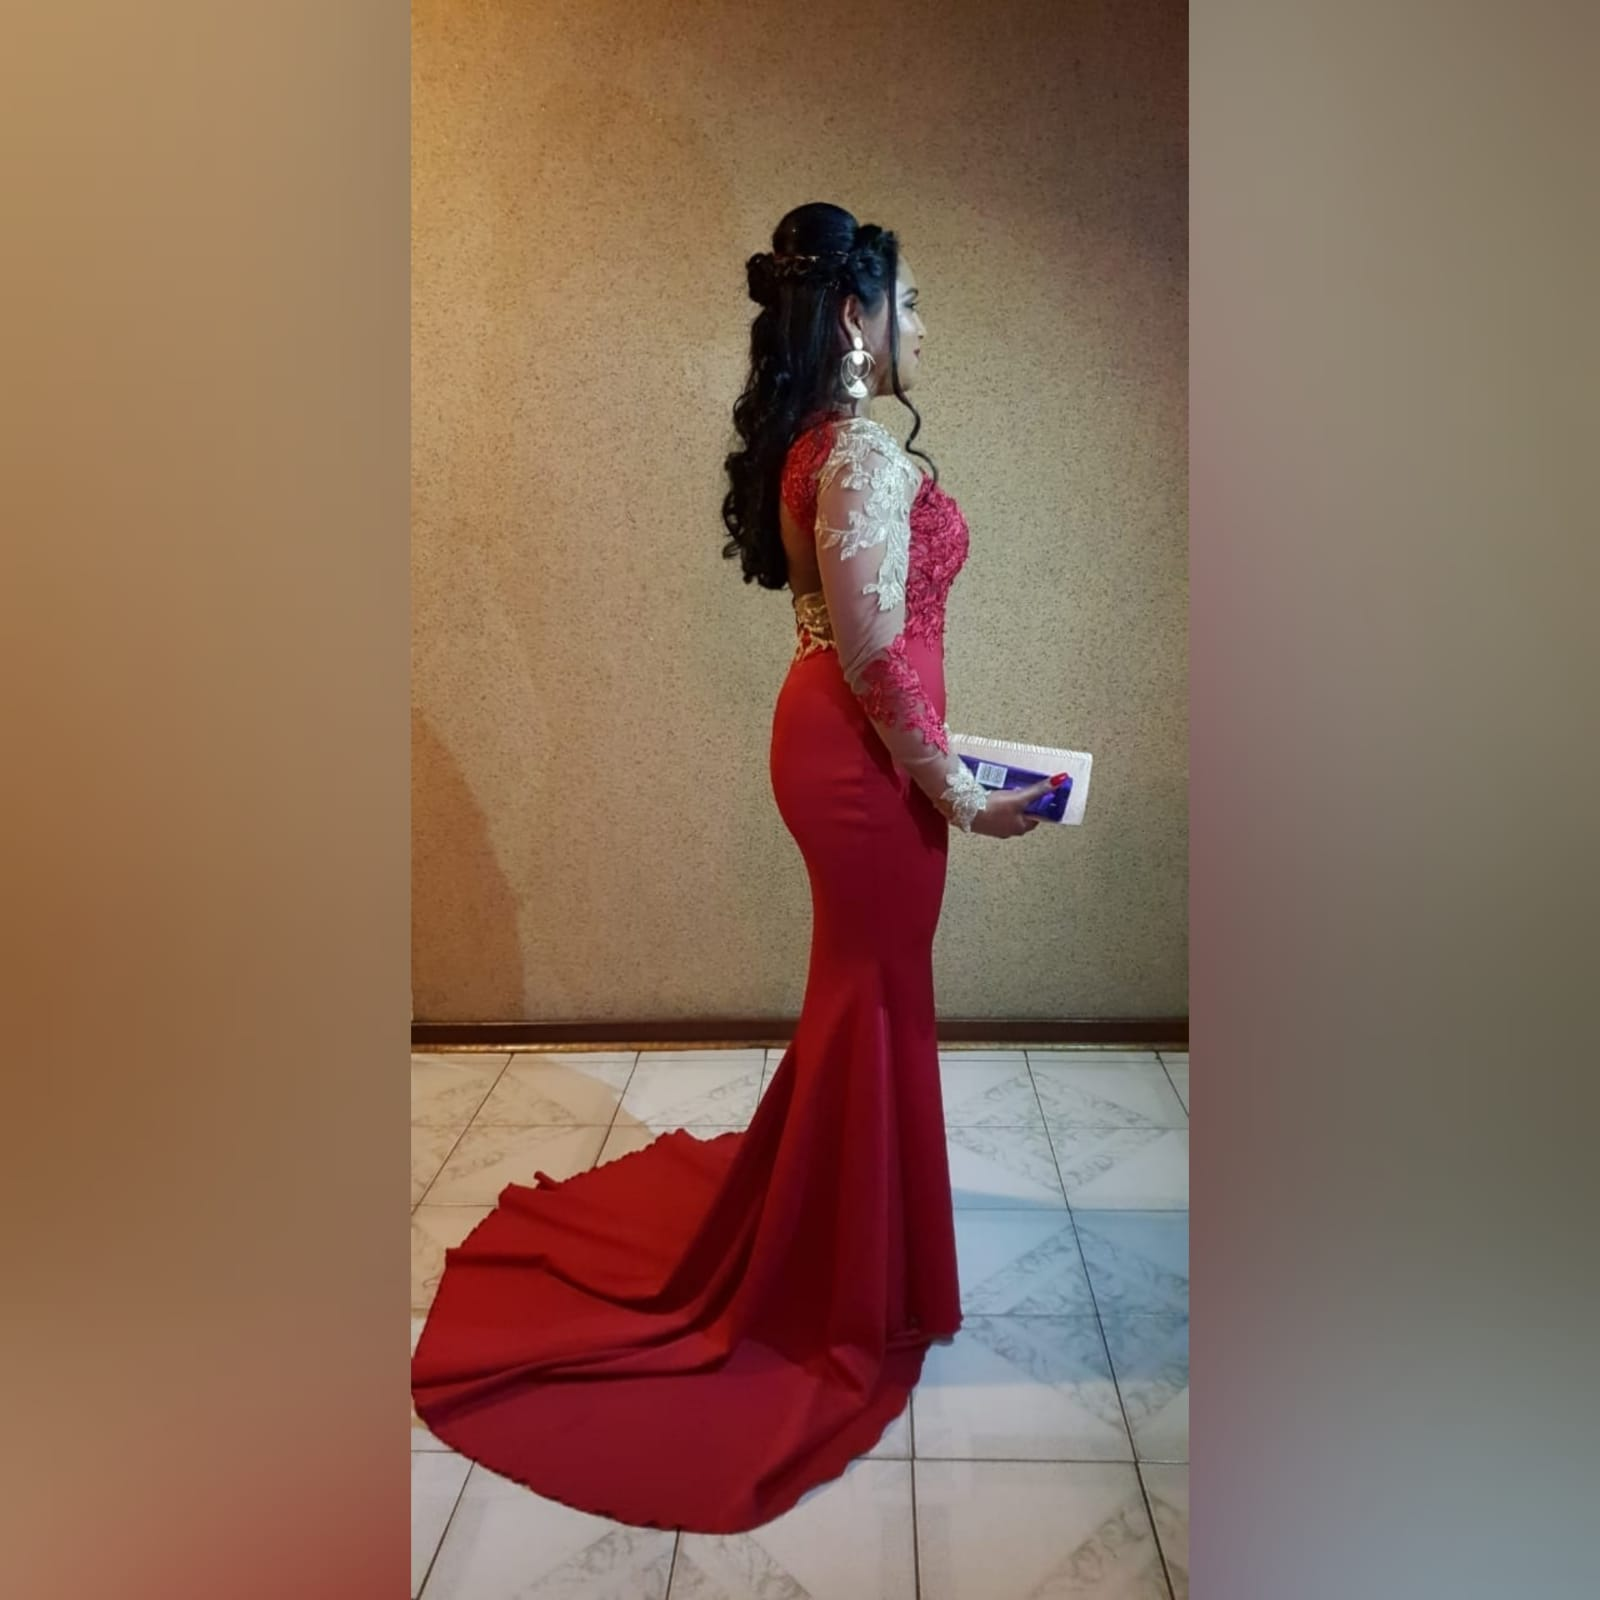 Red and gold lace soft mermaid matric dance dress 1 red and gold lace soft mermaid matric dance dress, illusion lace bodice and sleeves with a diamond shaped open back and a train.